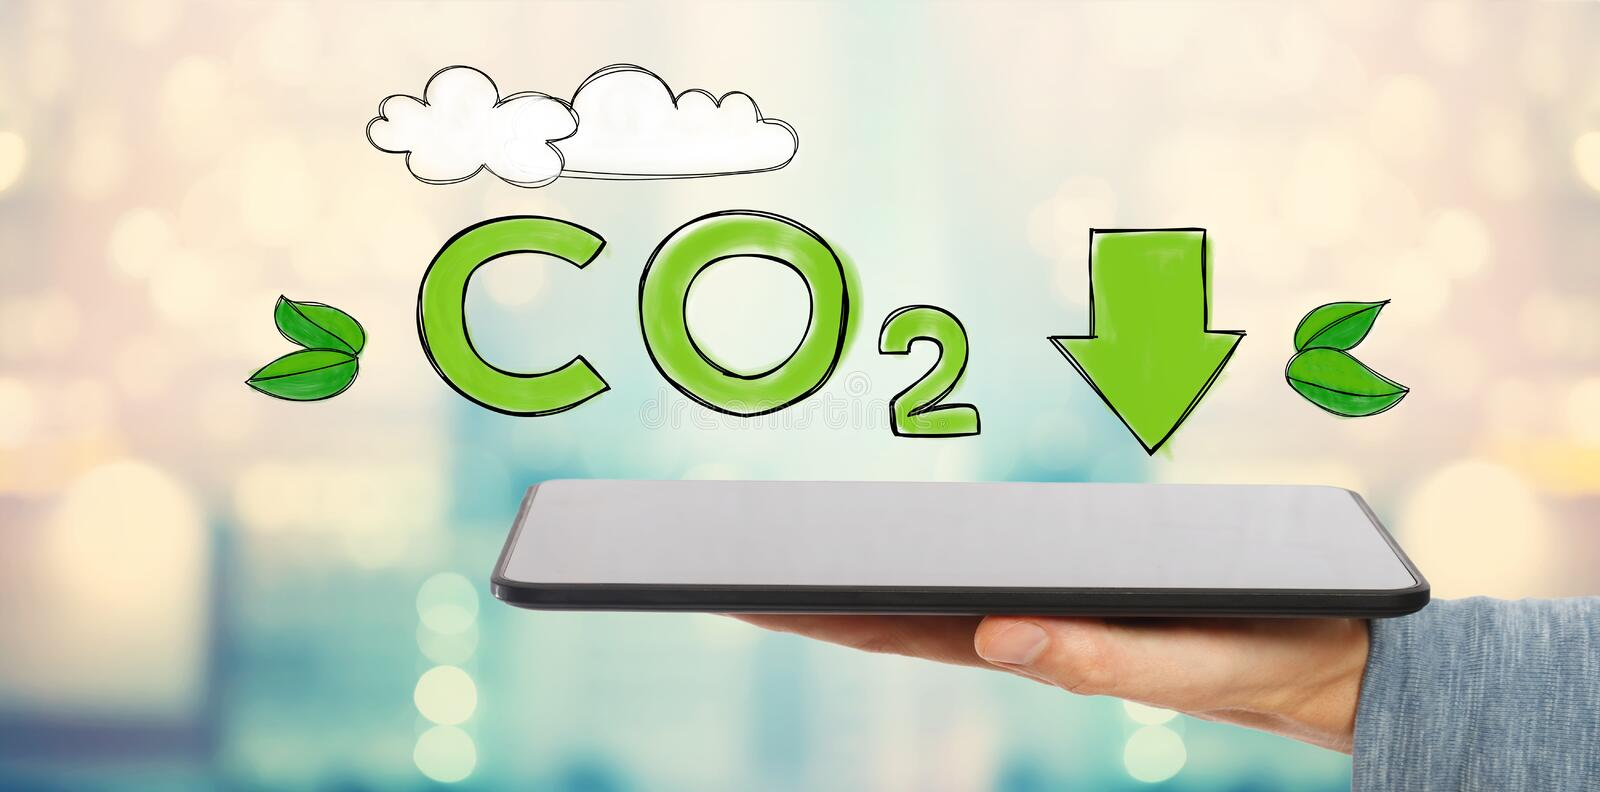 Reduce CO2 with man holding a tablet royalty free stock photo